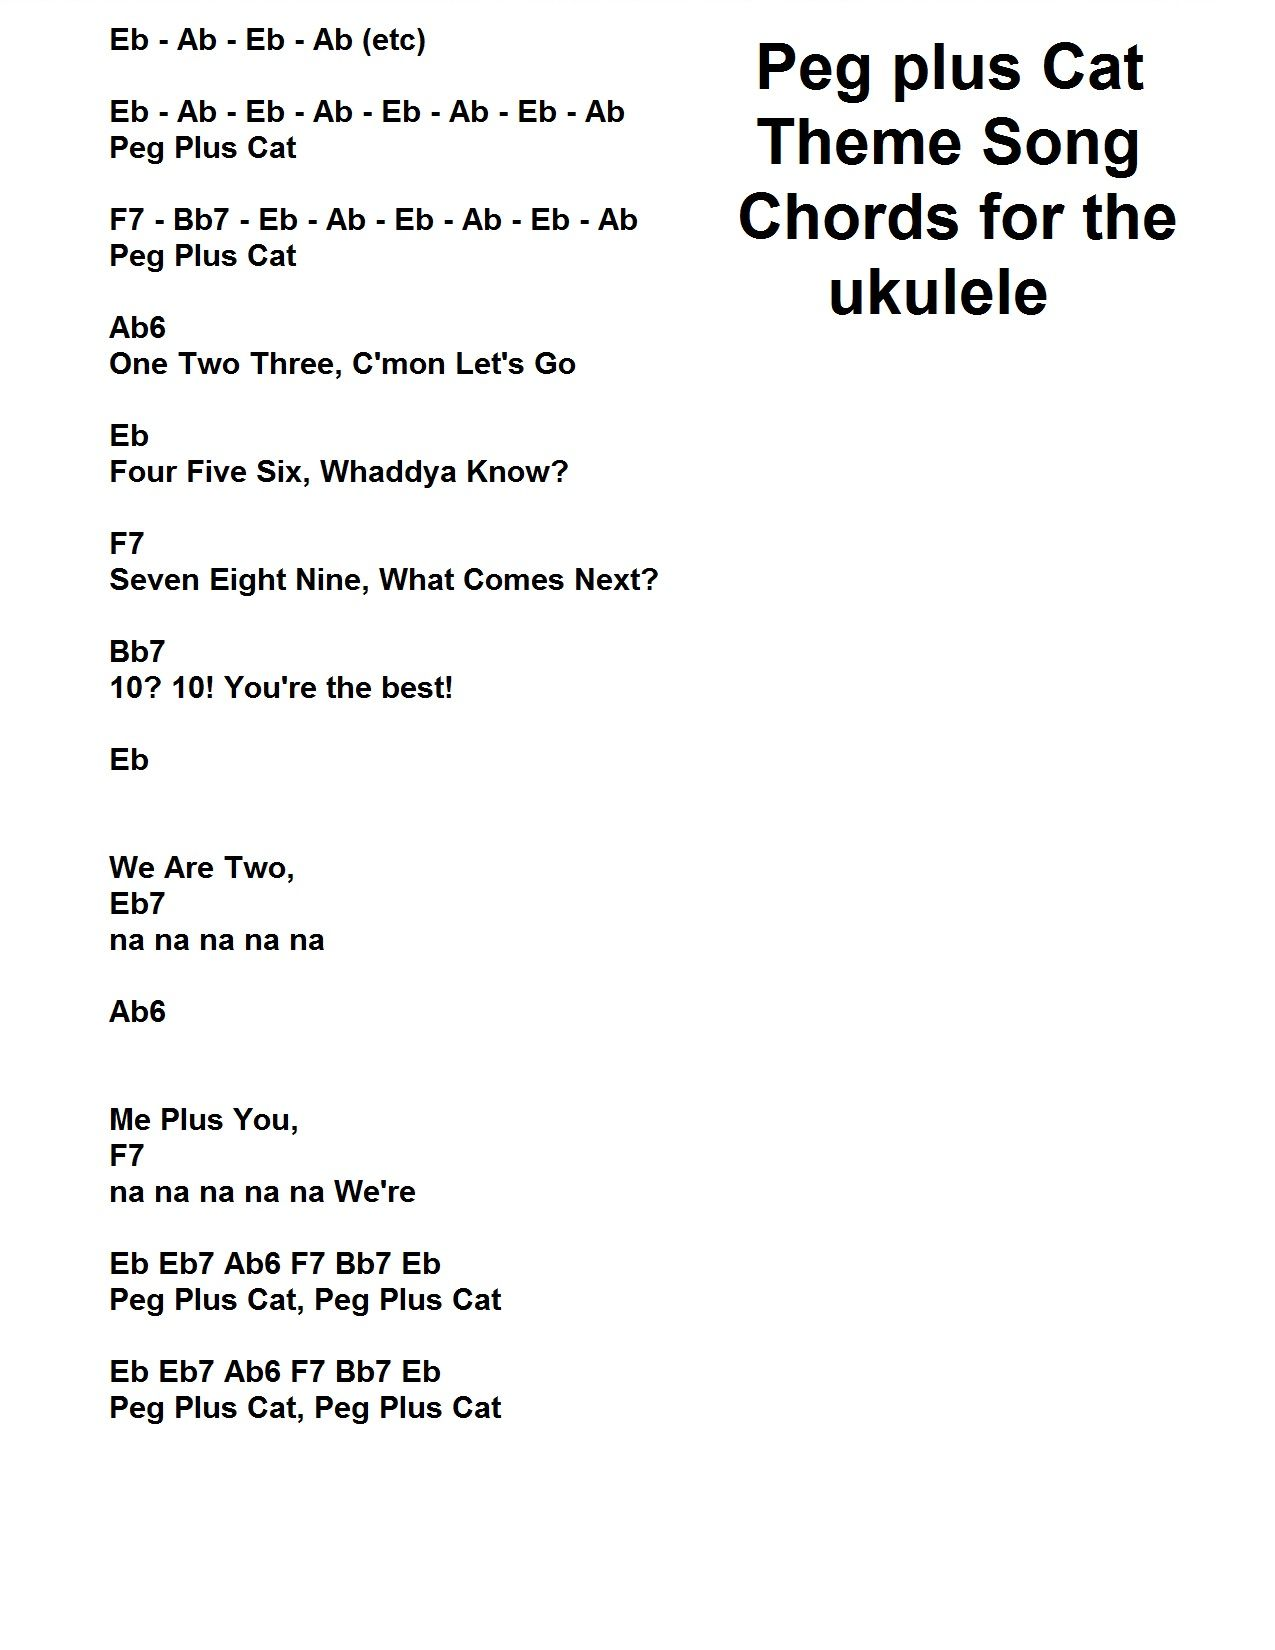 Peg plus cat theme song chords for the ukulele by j walter peg plus cat theme song chords for the ukulele by j walter hawkes hexwebz Choice Image